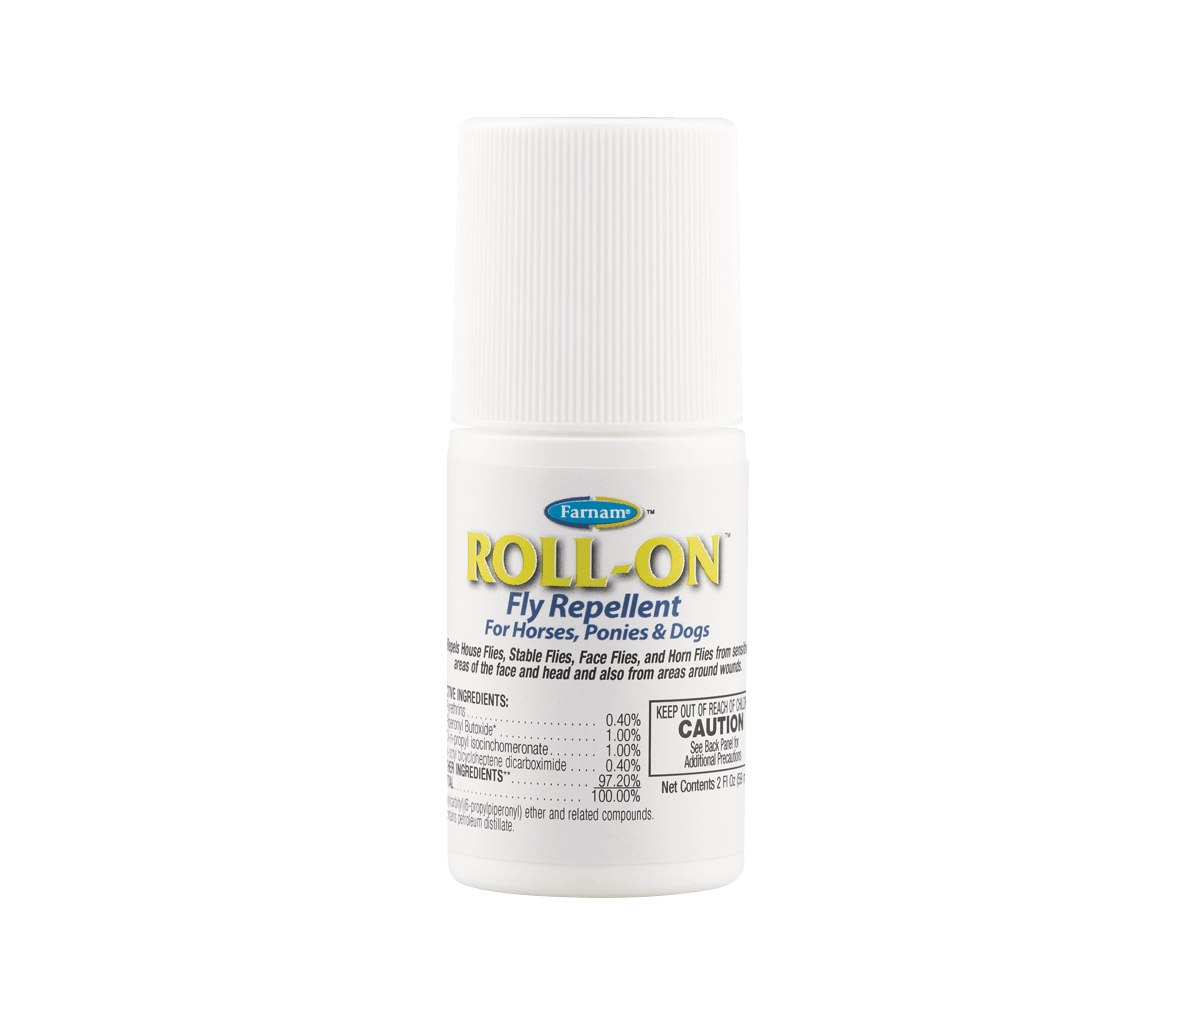 Equi Spot On Protection For Horses Fly Insect Control Farnam Bite Fighters Lotion Roll